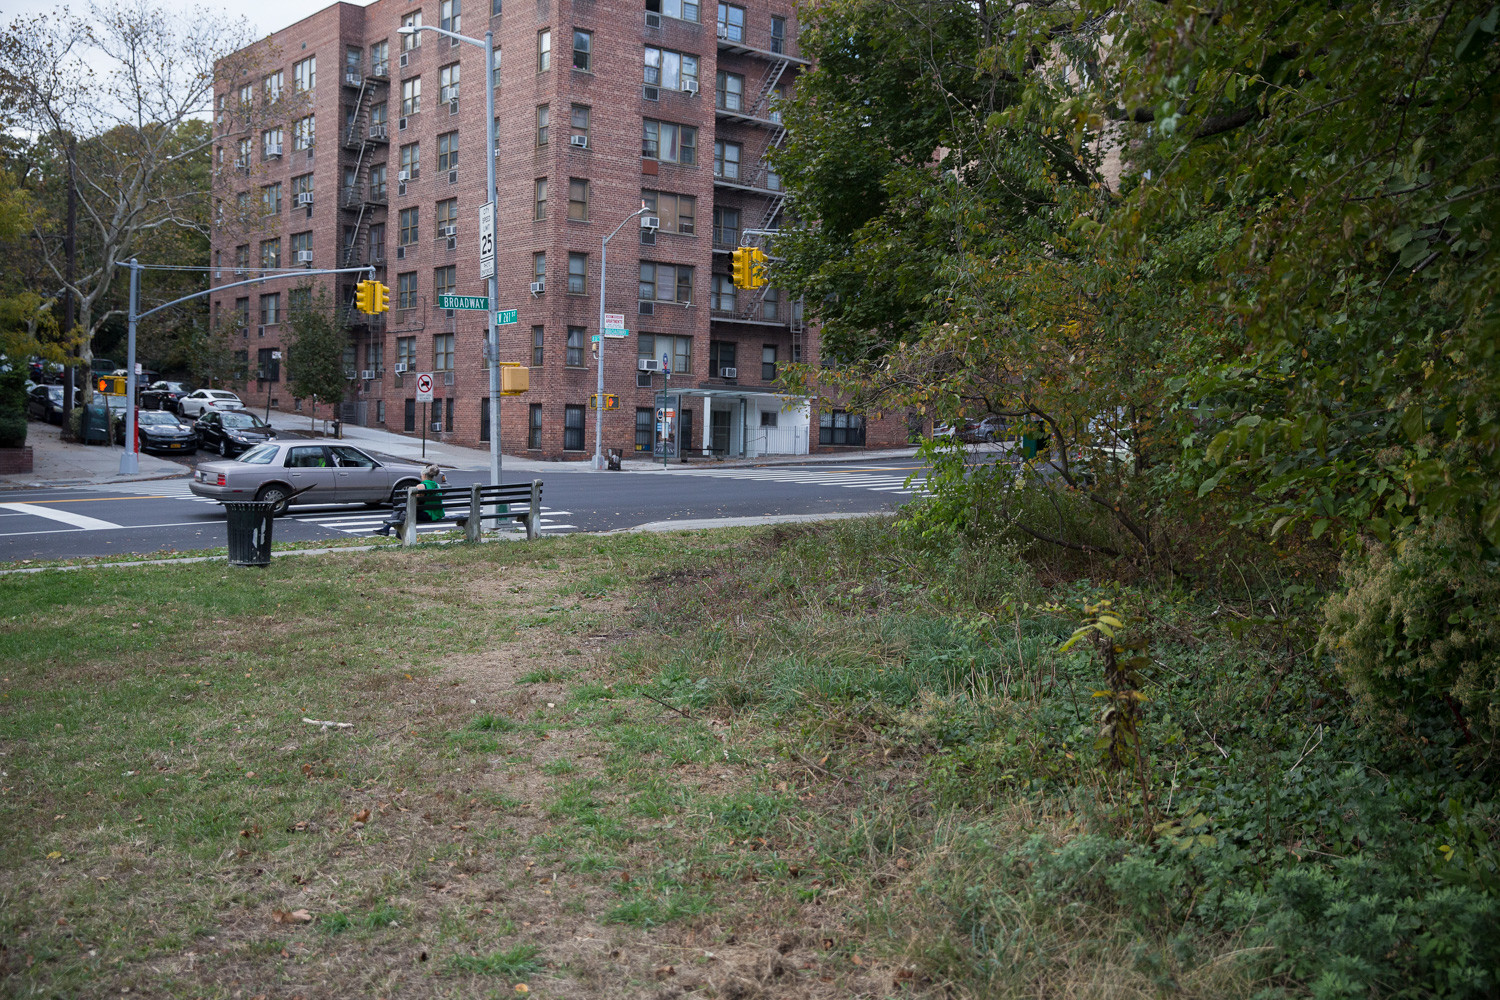 The parks department plans to construct an entrance to Van Cortlandt Park at West 261st Street and Broadway that would include more benches, tables, greeting gardens, signage and improved pathways. Some residents say they like this part of the park the way it is and are wary of any changes that might attract large, rowdy groups of people to their local green area.